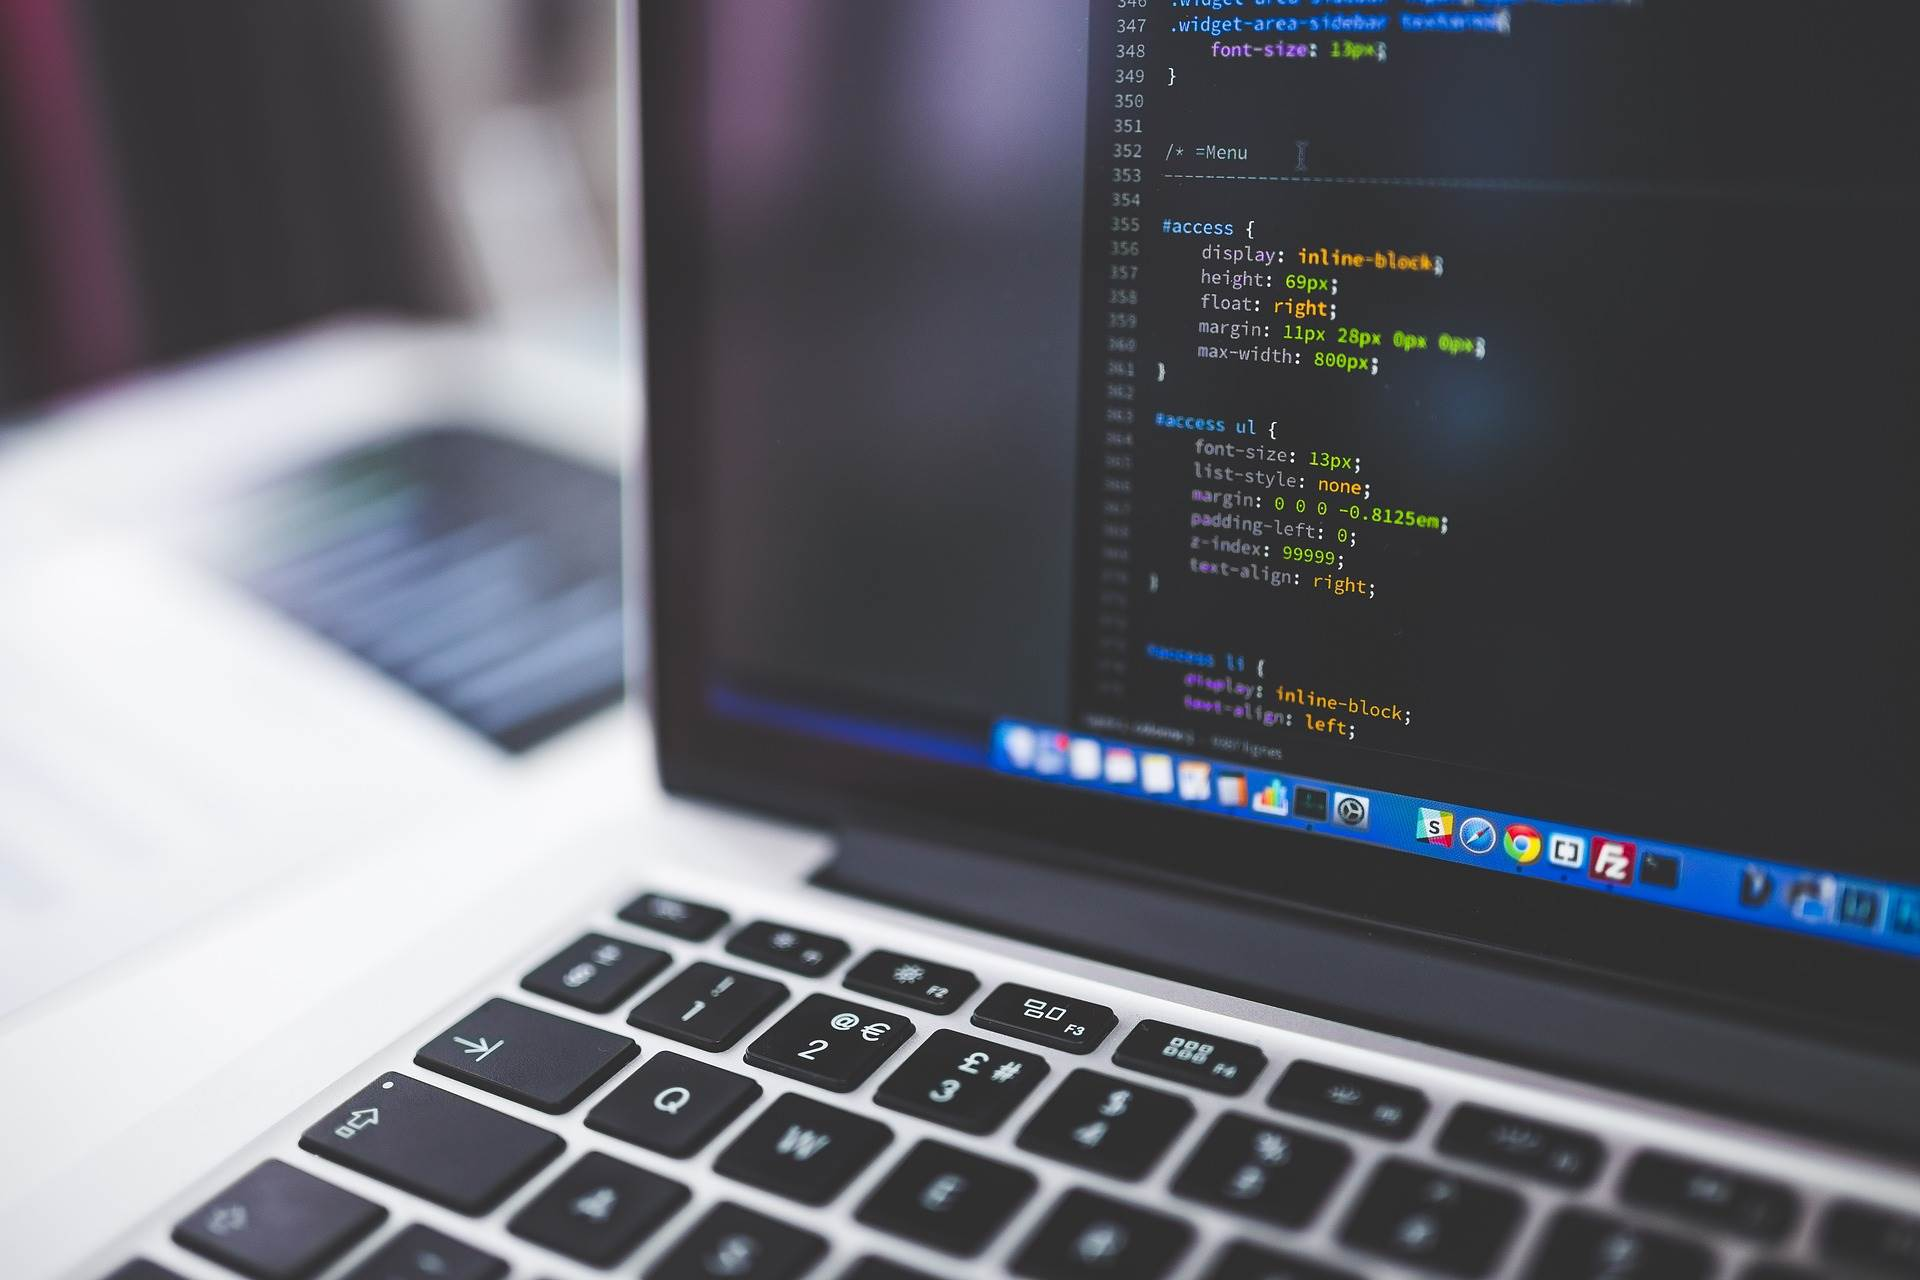 Learn C#: Tutorials for Beginners, Intermediate, and Advanced Programmers